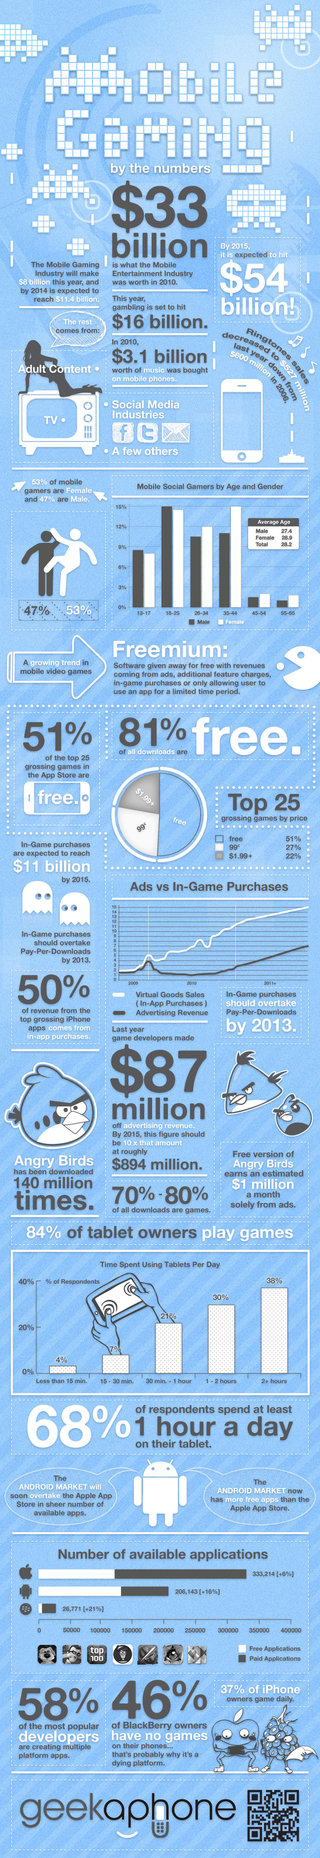 mobile infographic shows smartphone gaming s ultra success levels image 2